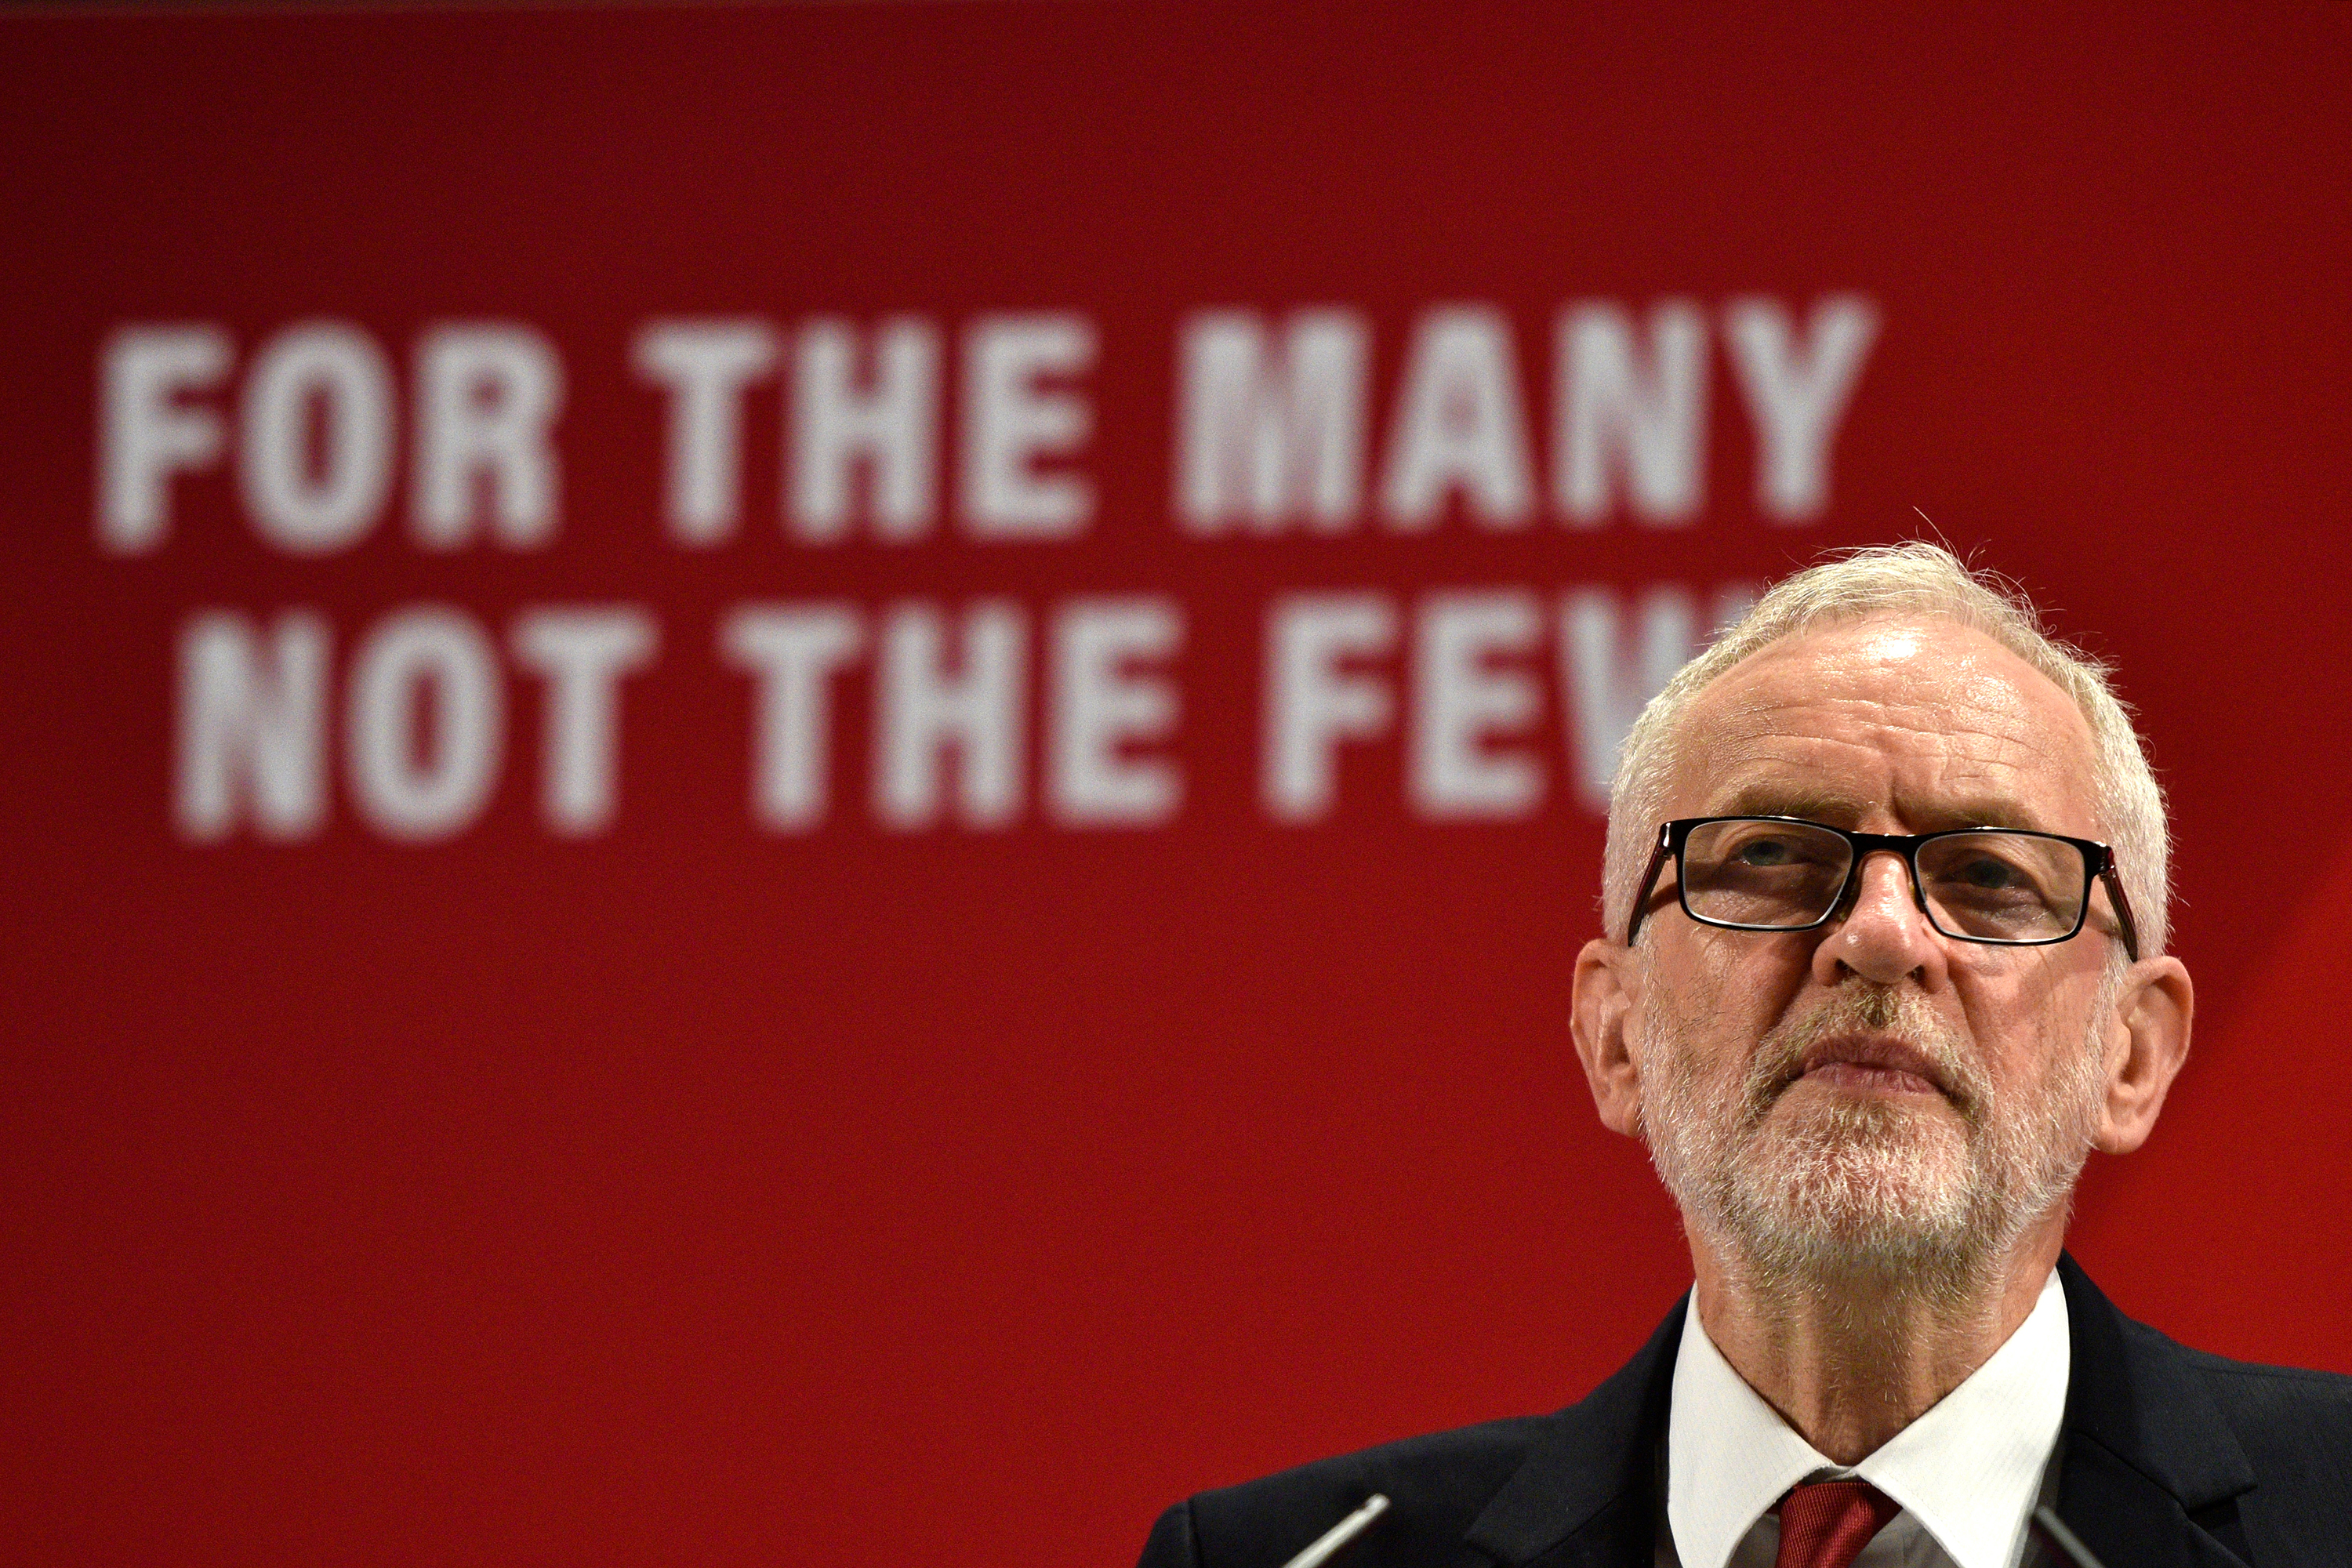 Jeremy Corbyn will nationalize UK utilities in 100 days. 'Simply huge' changes loom if Labour wins the election